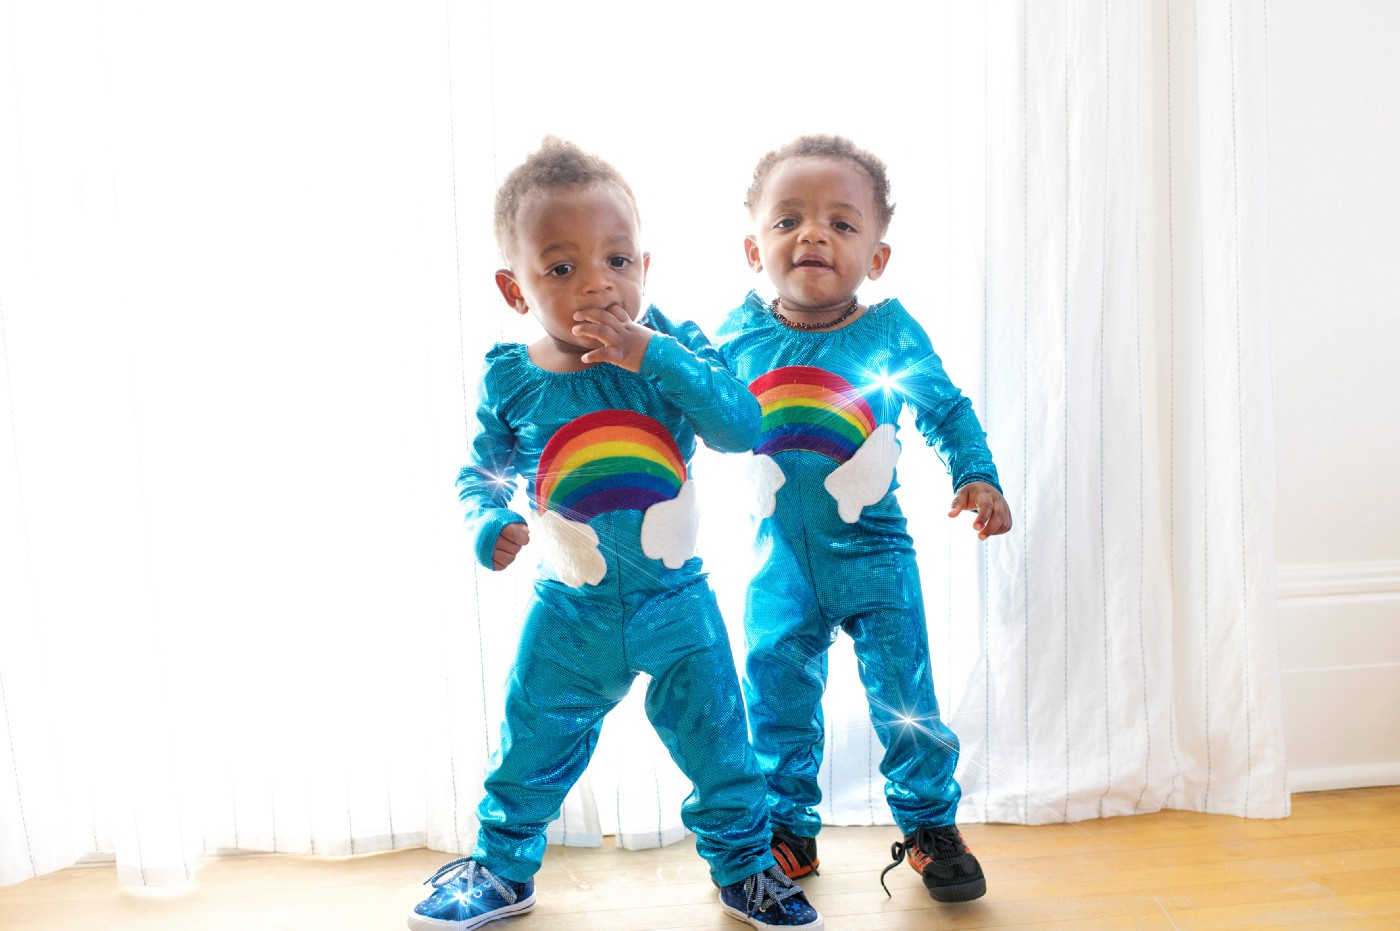 Two identical twin toddlers wearing matching outfits